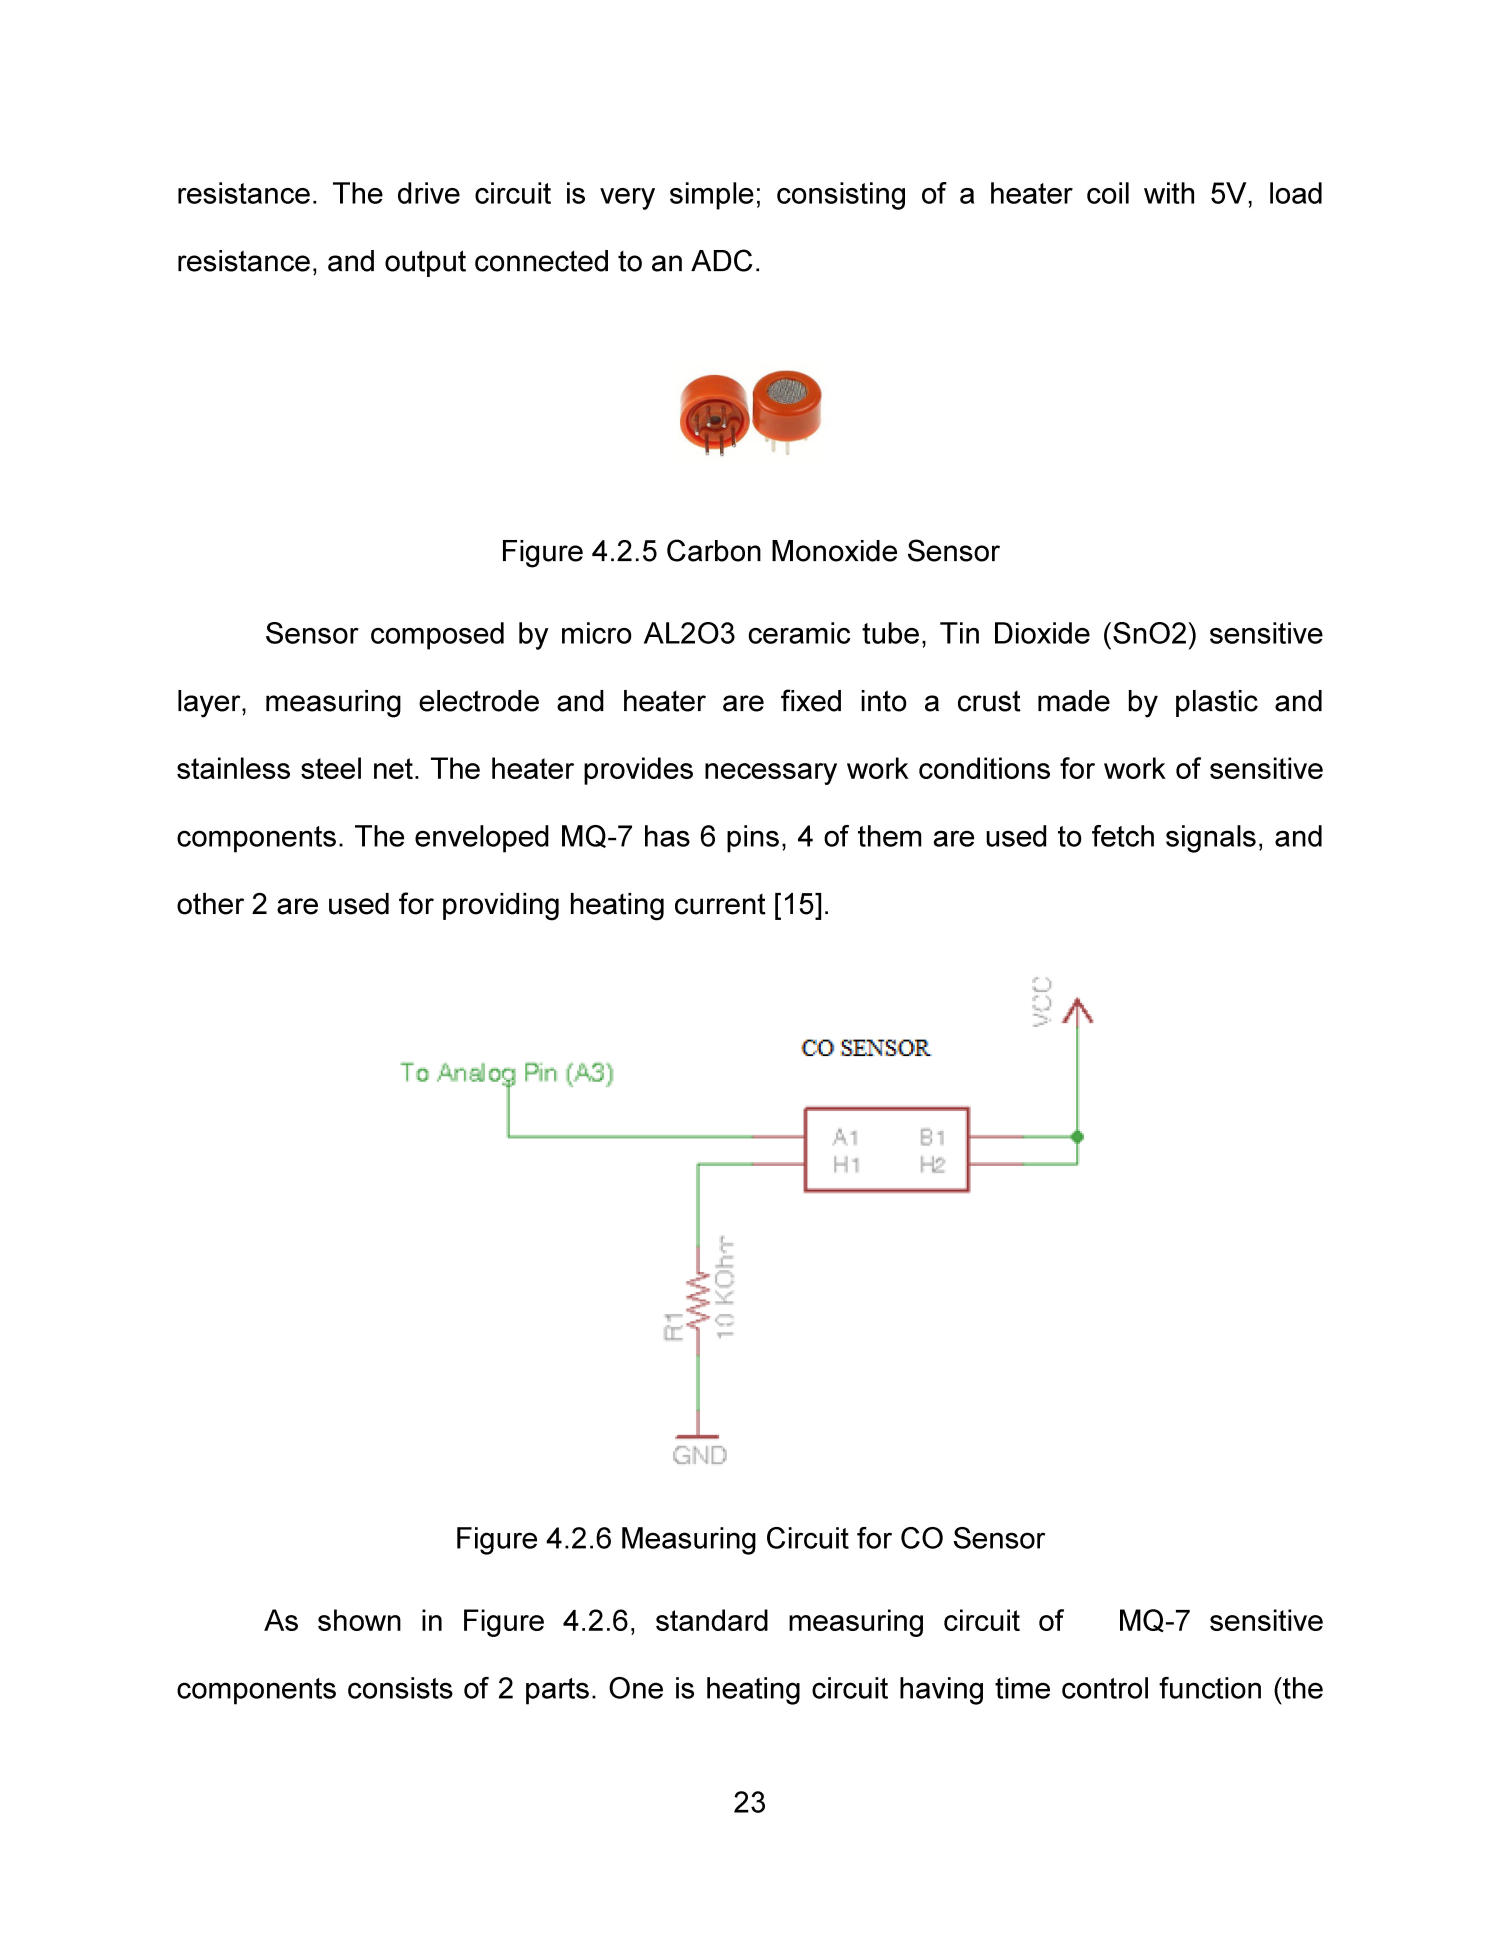 Development Of Wireless Sensor Network System For Indoor Air Quality Mq7 Circuit Diagram Monitoring Page 23 Digital Library